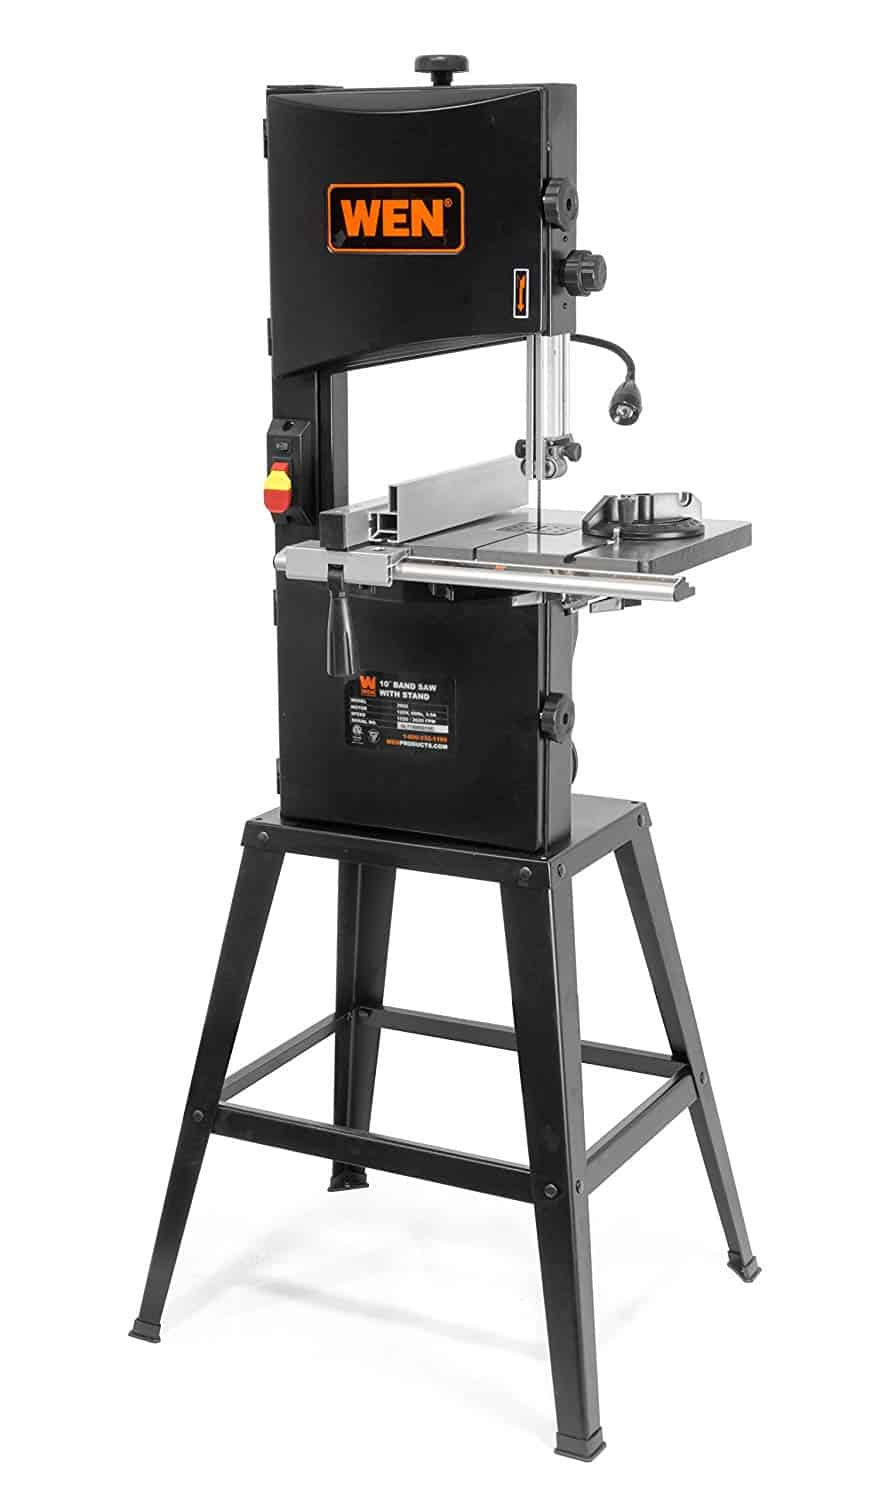 WEN 3962 Two-Speed Band Saw with Stand and Worklight, 10